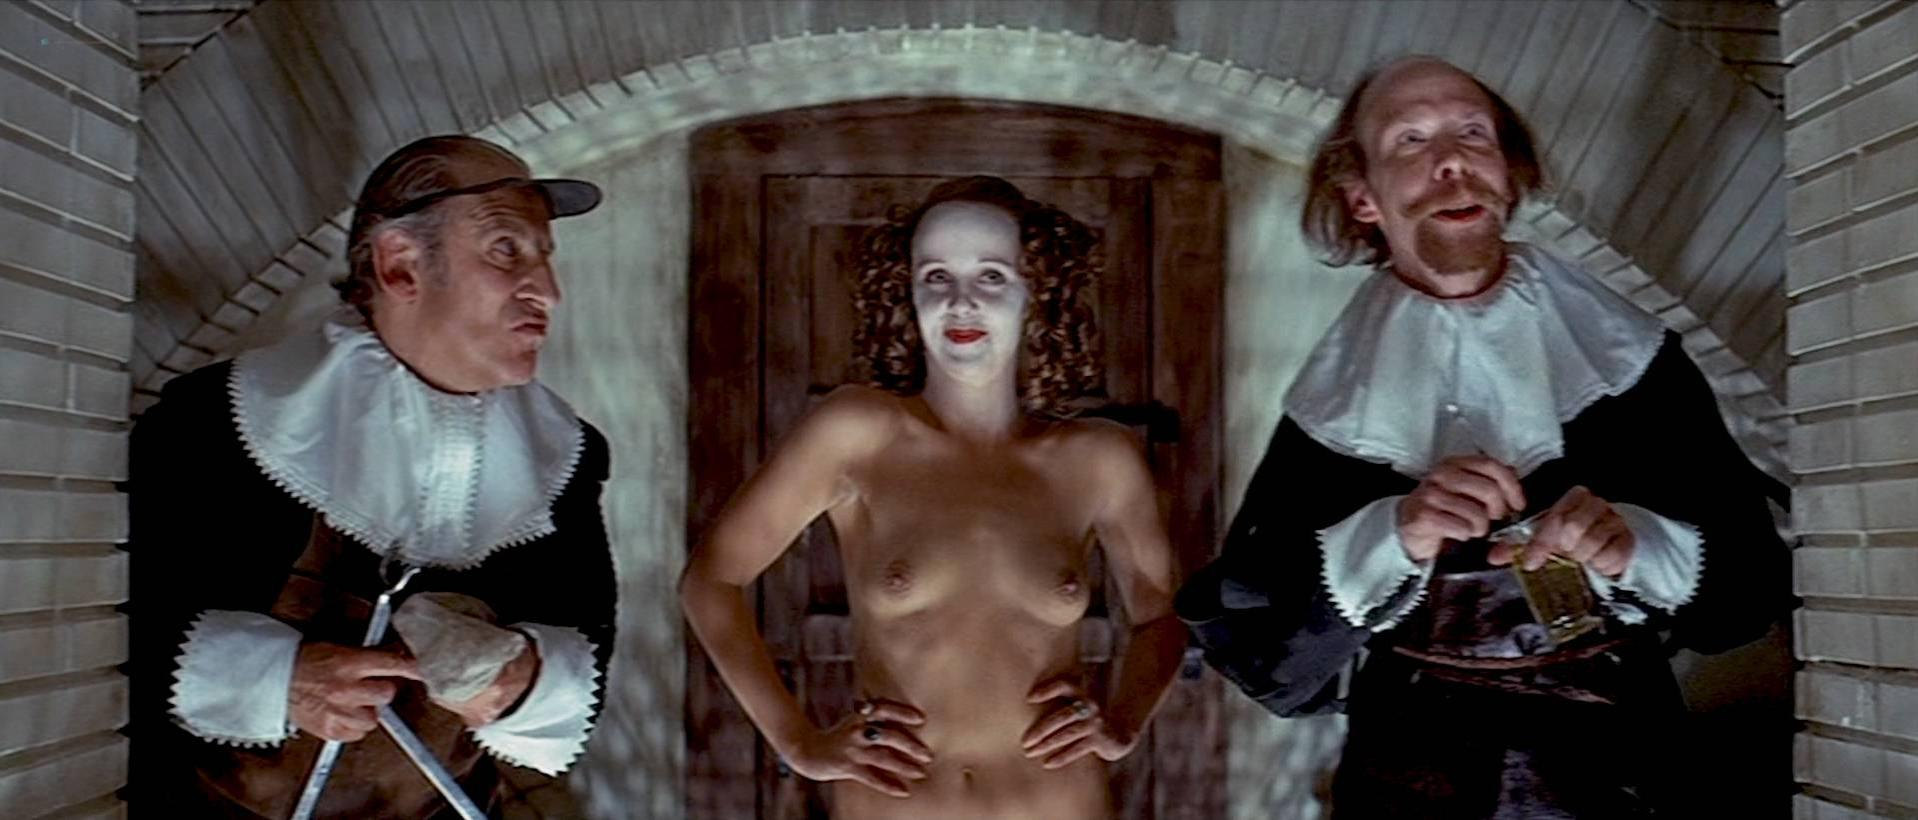 Gemma Jones nude, Georgina Hale nude - The Devils (1971)